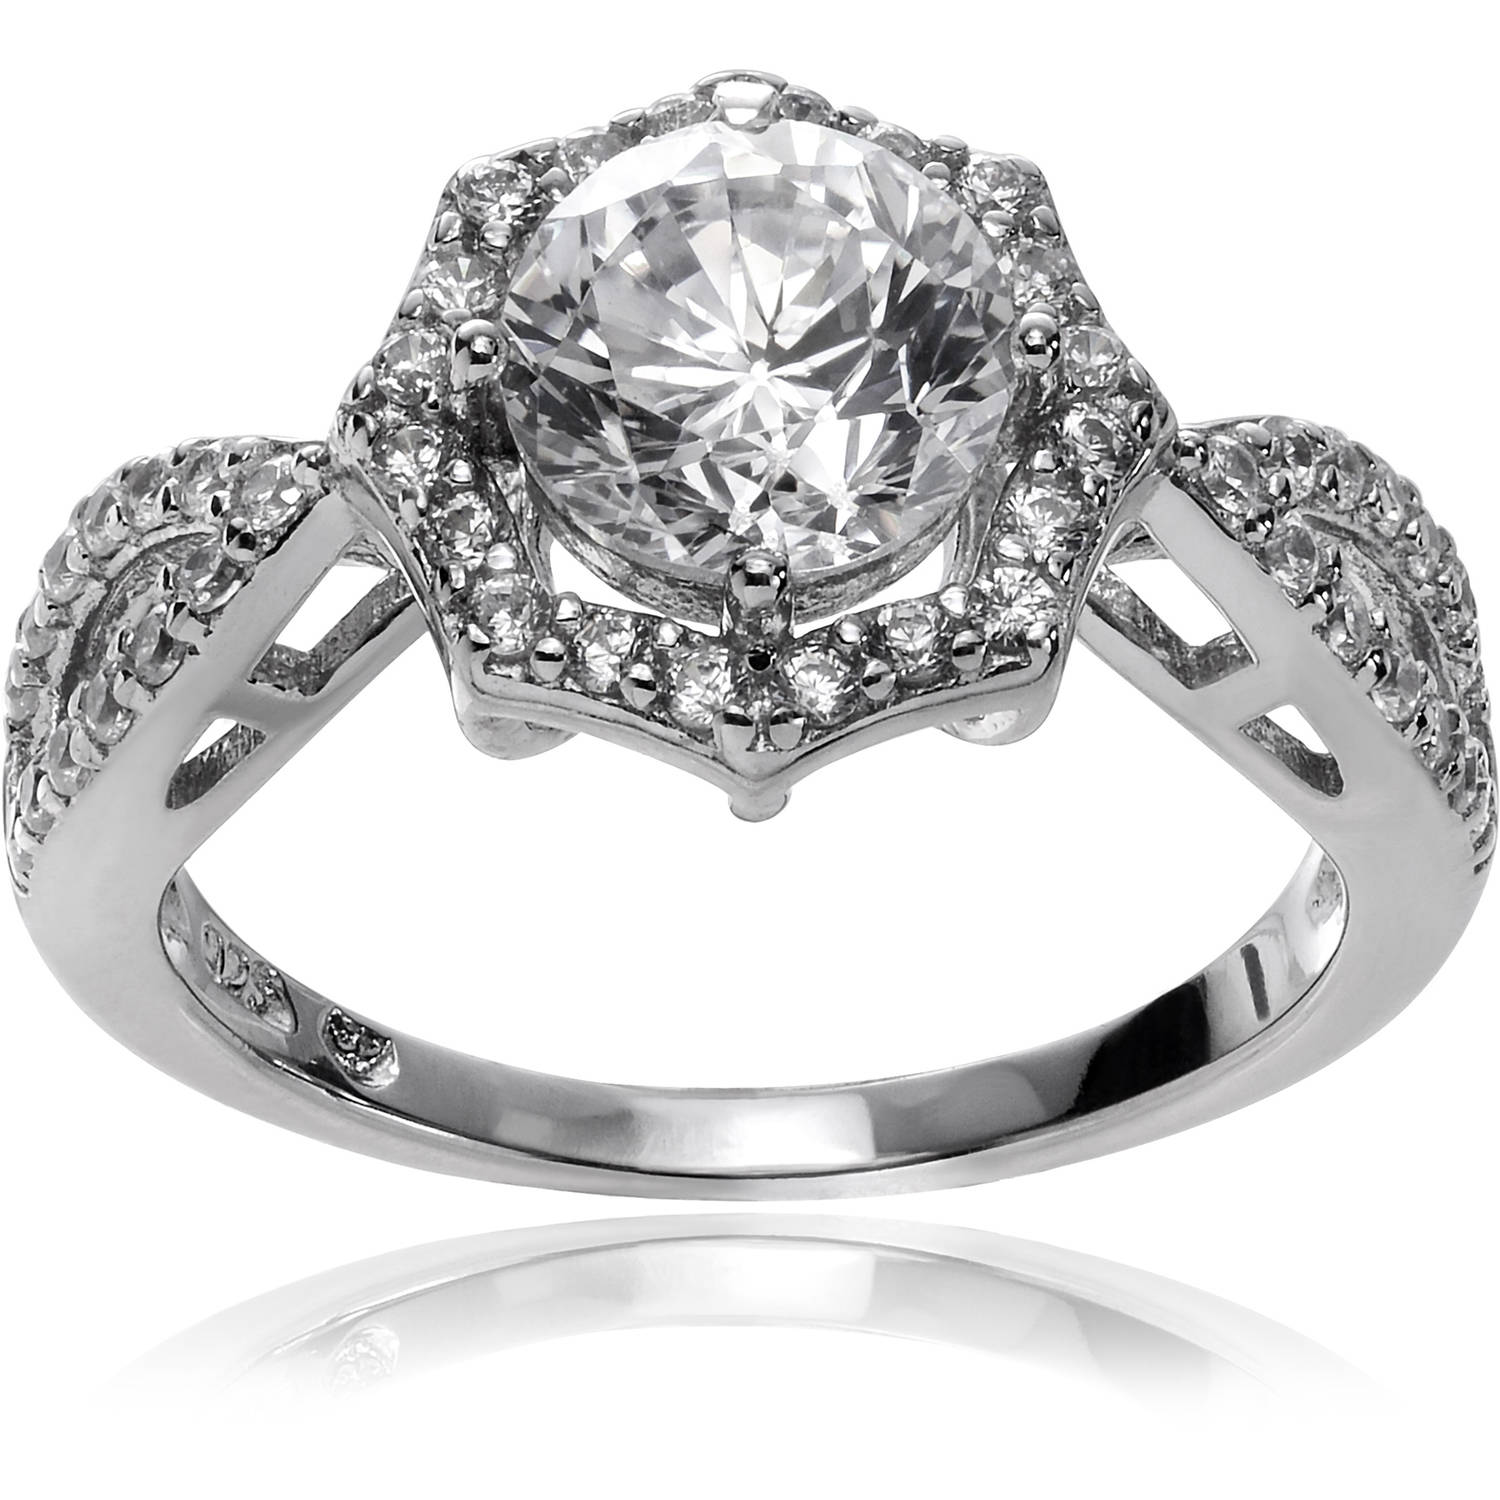 Alexandria Collection Women's Round-Cut CZ Rhodium-Plated Sterling Silver Halo Engagement Ring